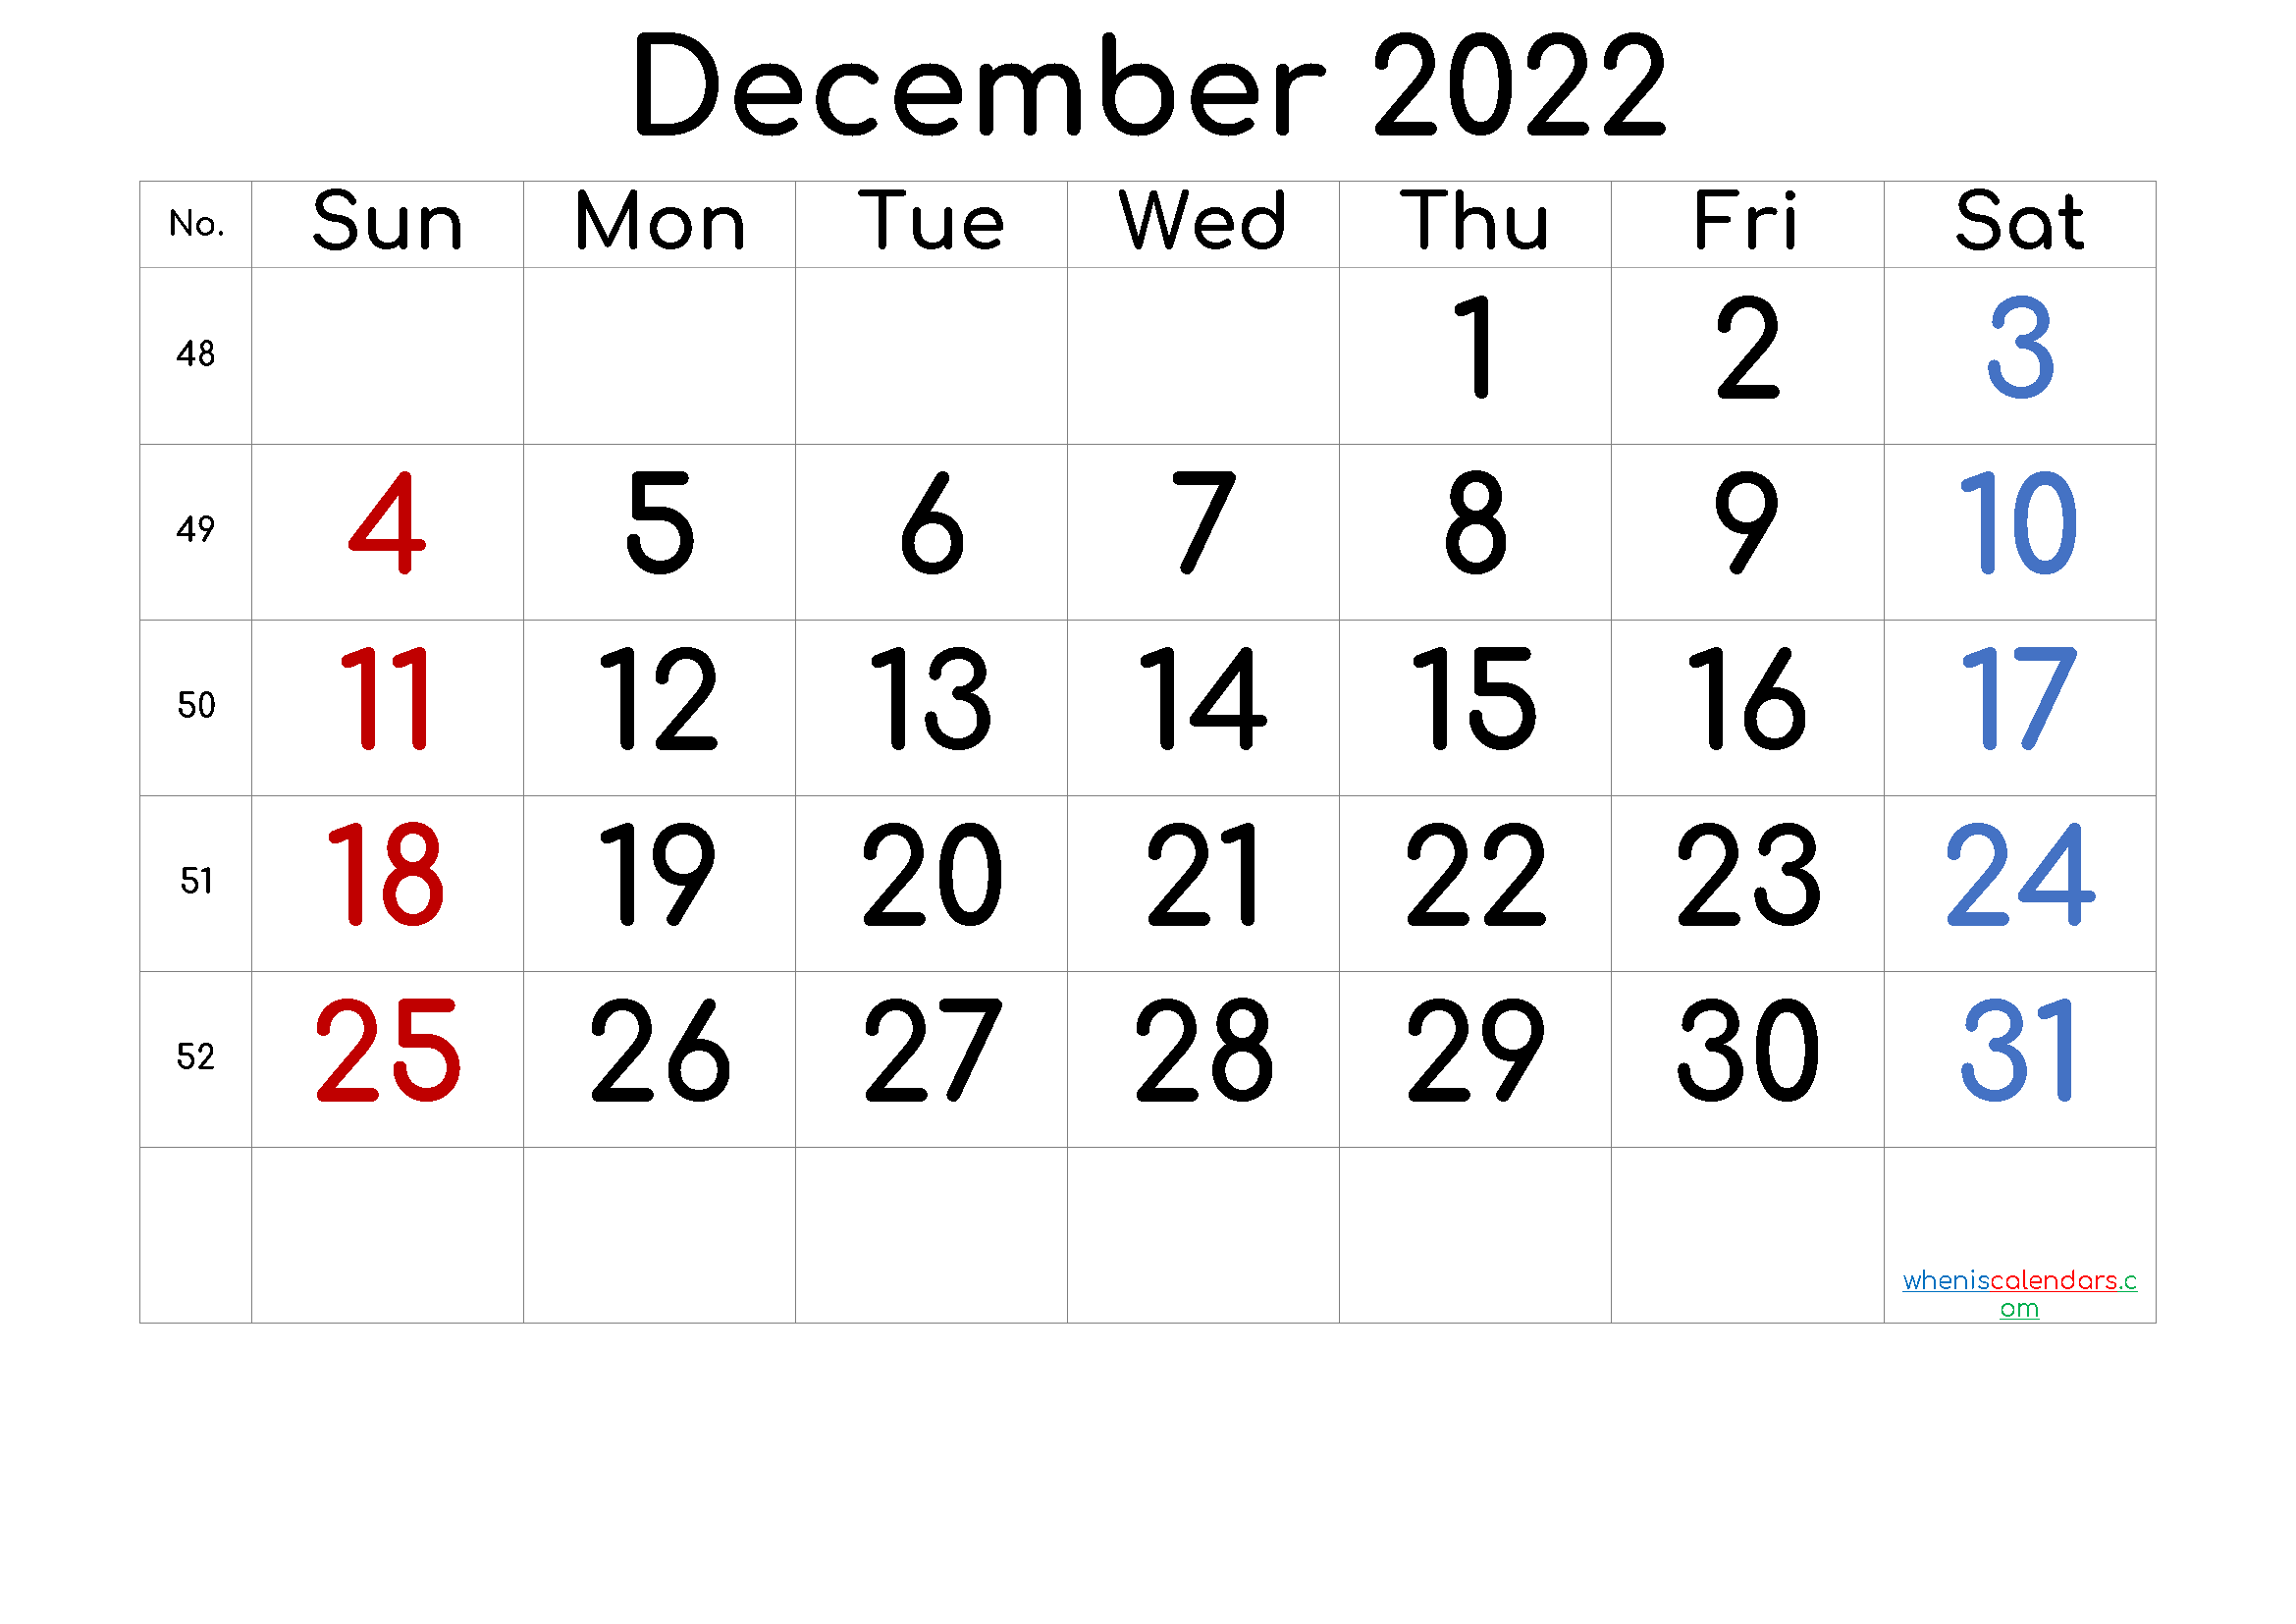 December 2022 Printable Calendar with Week Numbers